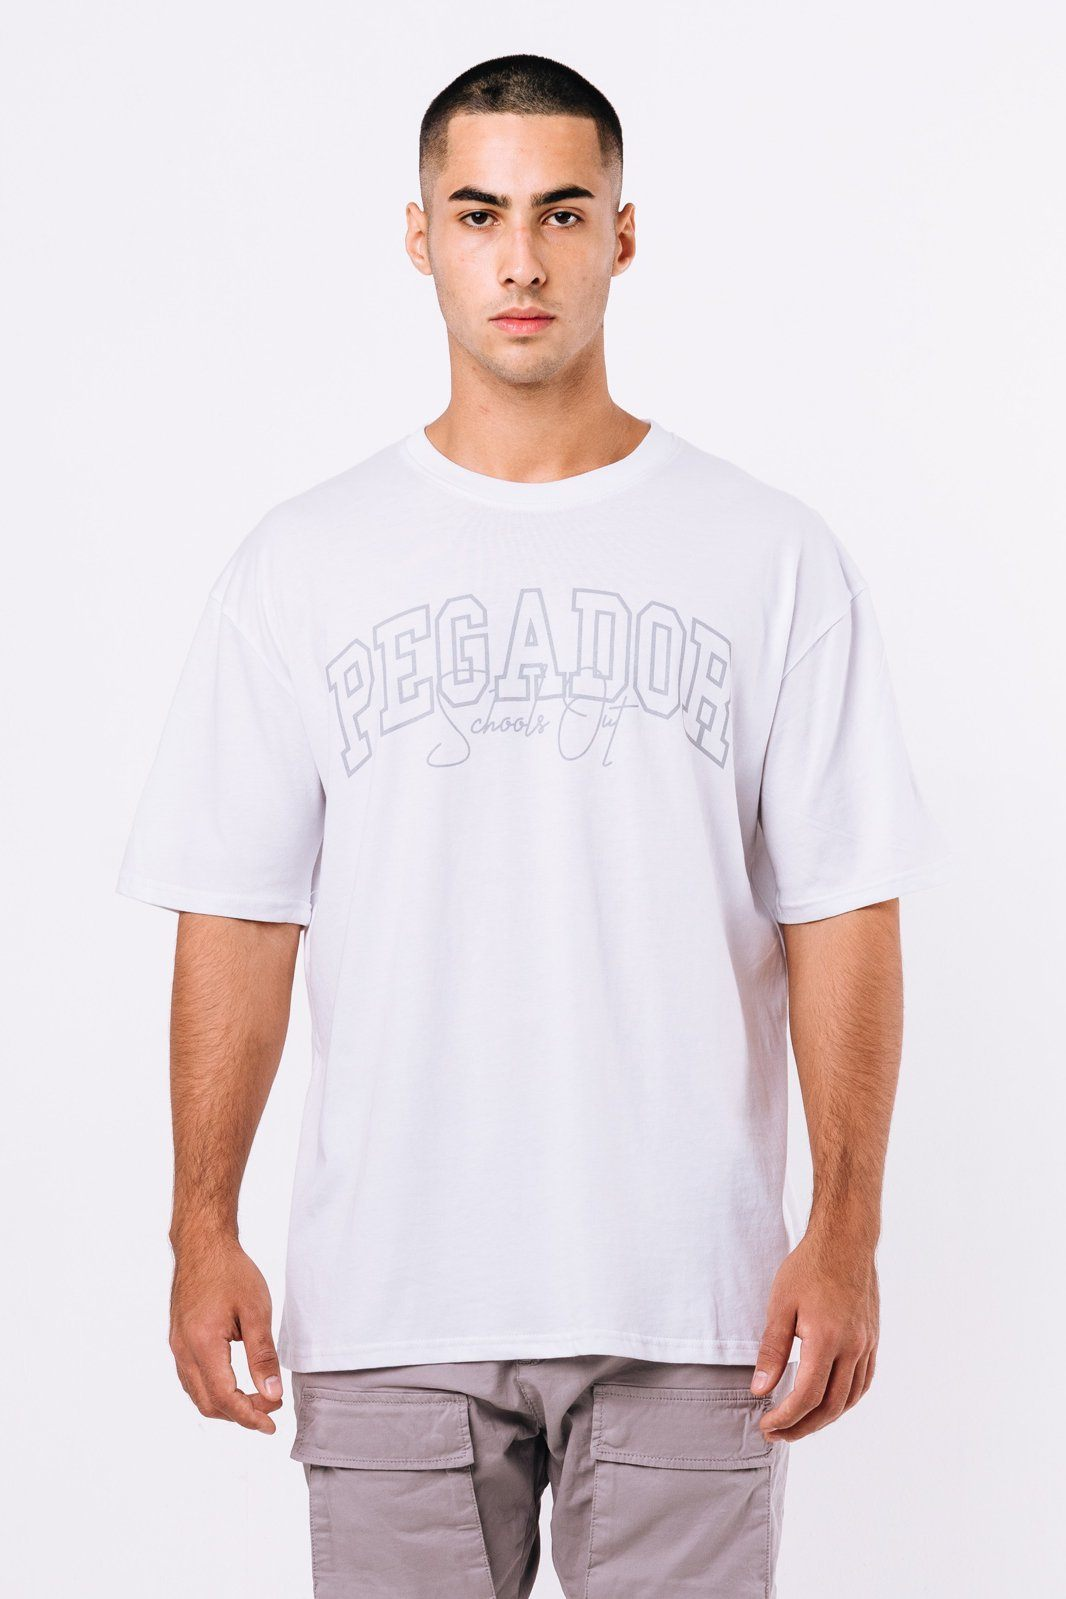 Vista Oversized Tee White